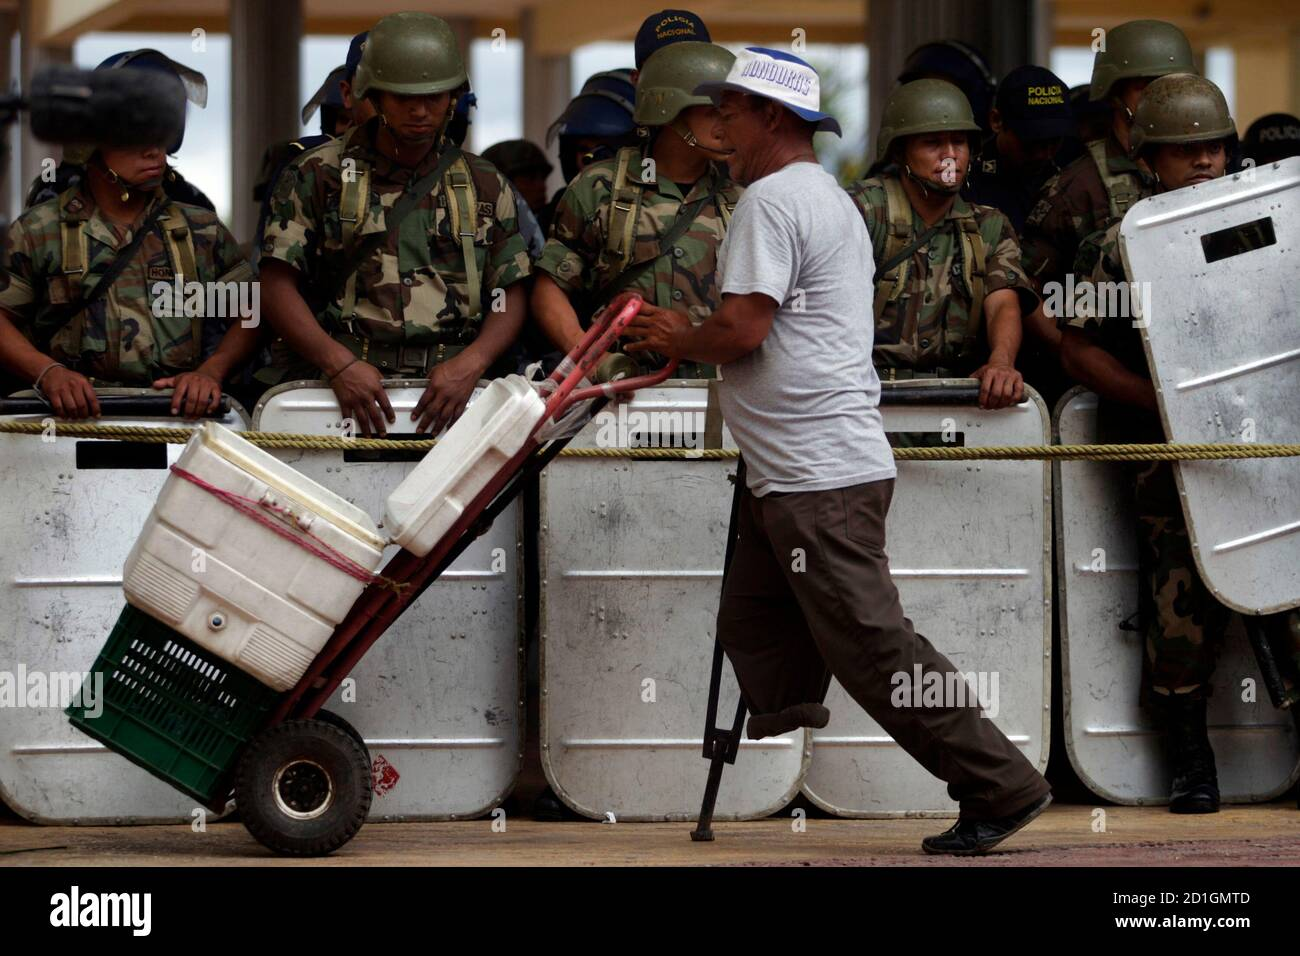 A water vendor walks in front of soldiers outside National Congress inTegucigalpa July 15, 2009. The United States urged the rival sides in Honduras' political crisis on Tuesday to give dialogue a chance, but the deposed president is threatening to abandon talks mediated by Costa Rica if he is not reinstated quickly. A second round of talks is set for Saturday REUTERS/Edgard Garrido (HONDURAS POLITICS CONFLICT MILITARY) Stock Photo